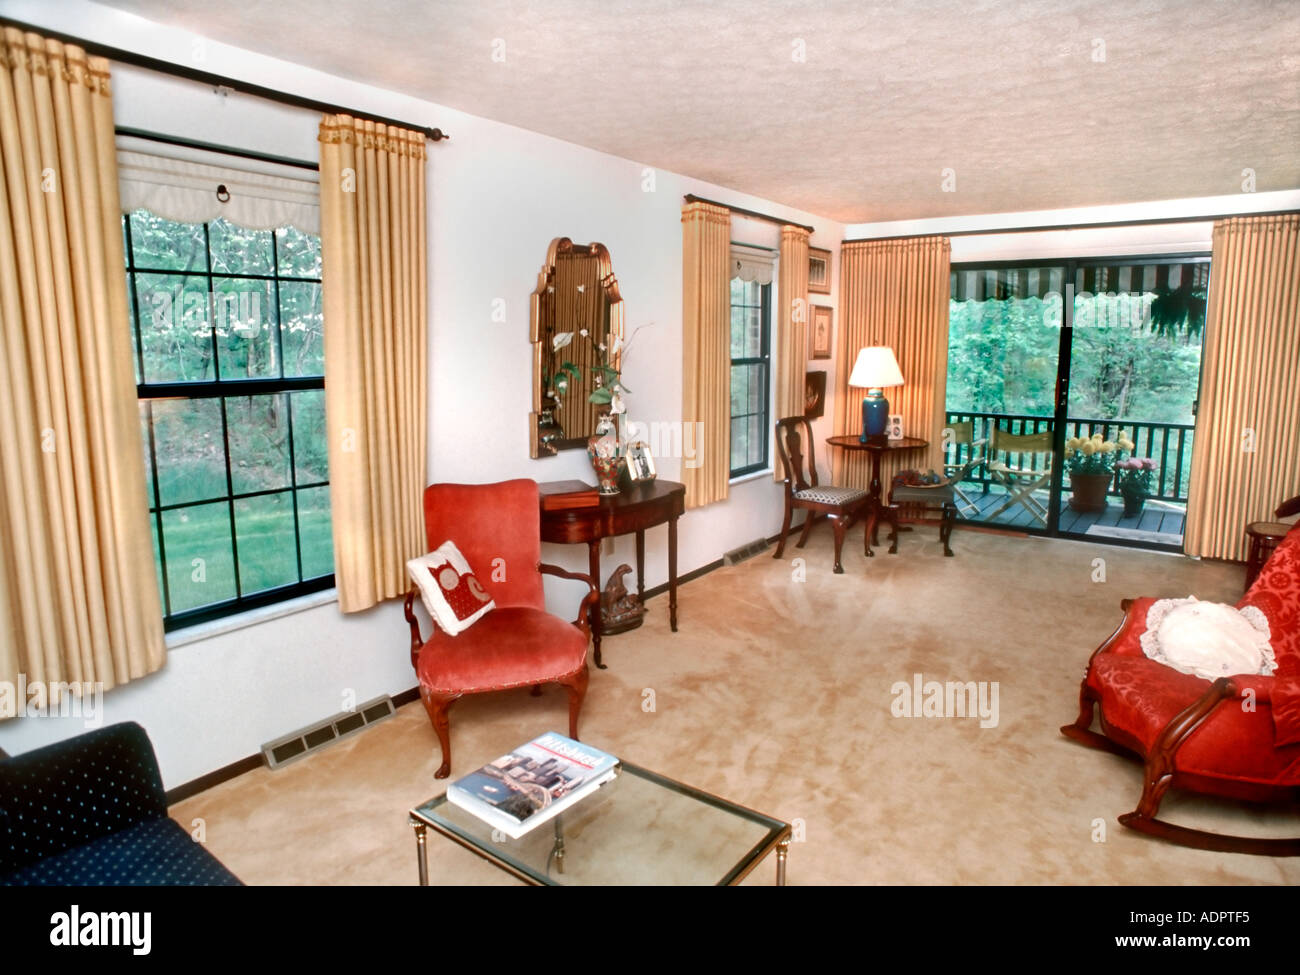 Usa Showcase Modern Home Interiors Flat Condominium Living Room Stock Photo Alamy